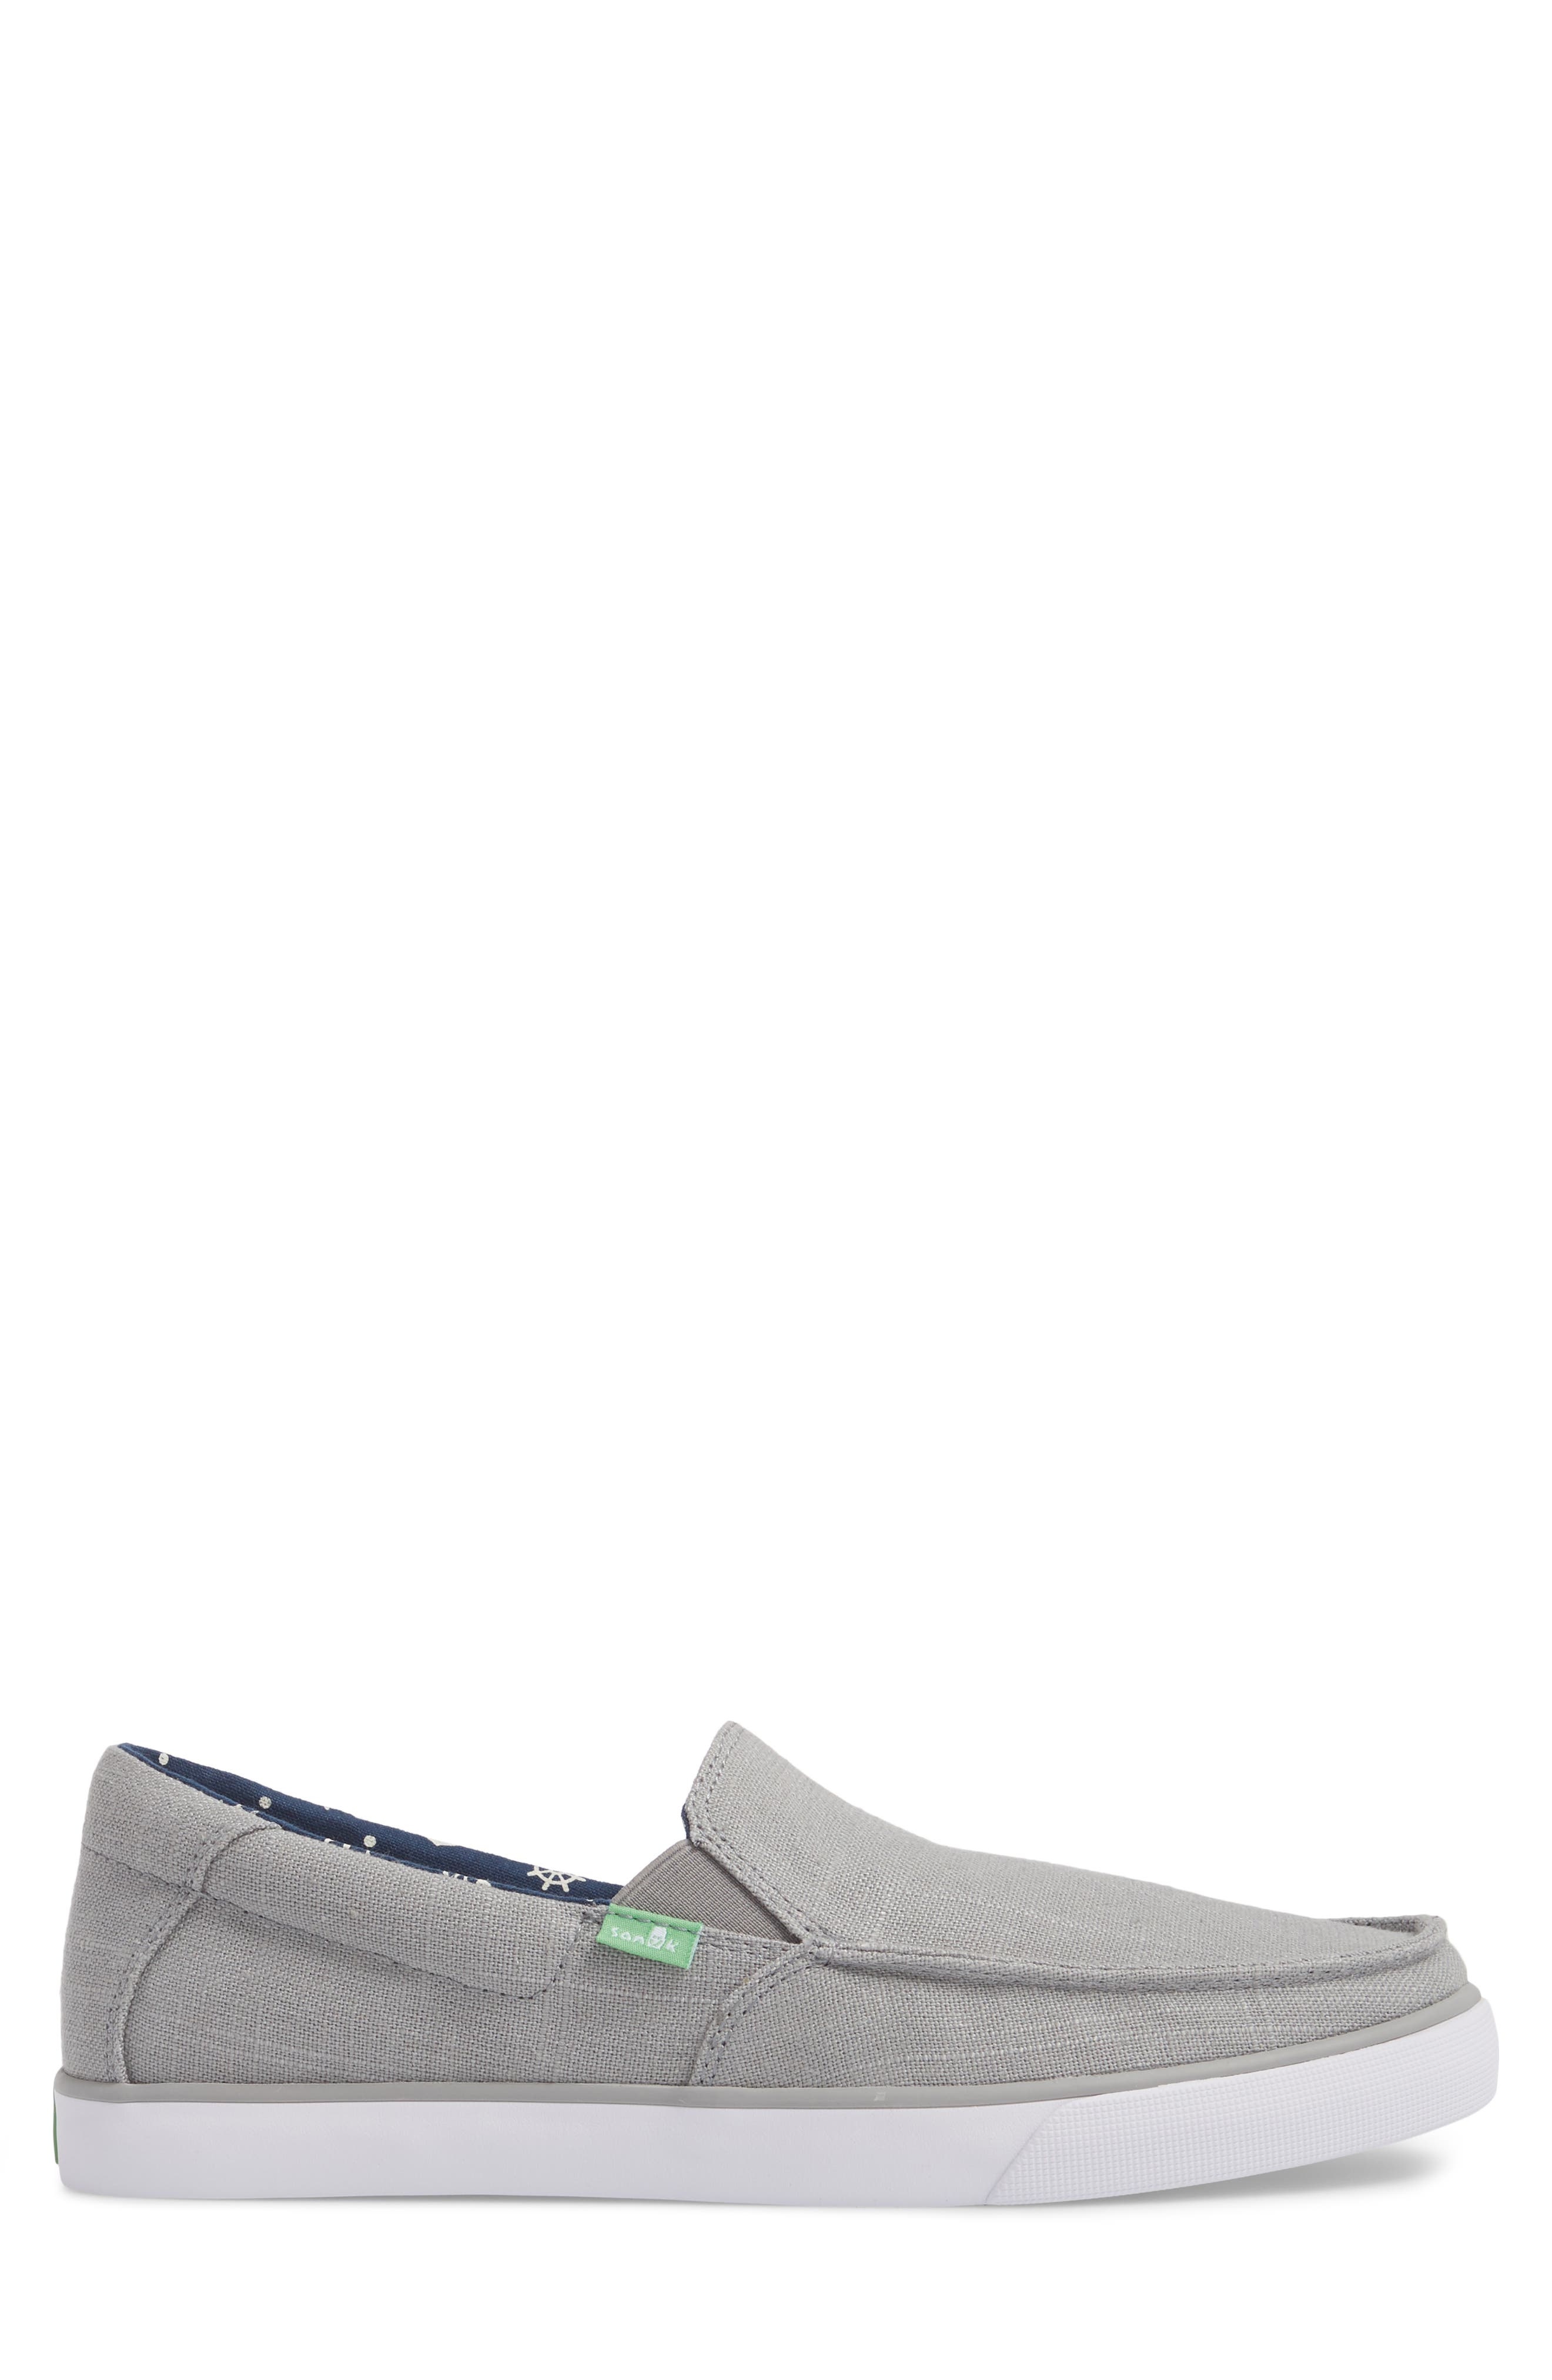 Sideline Linen Slip-On,                             Alternate thumbnail 3, color,                             Grey